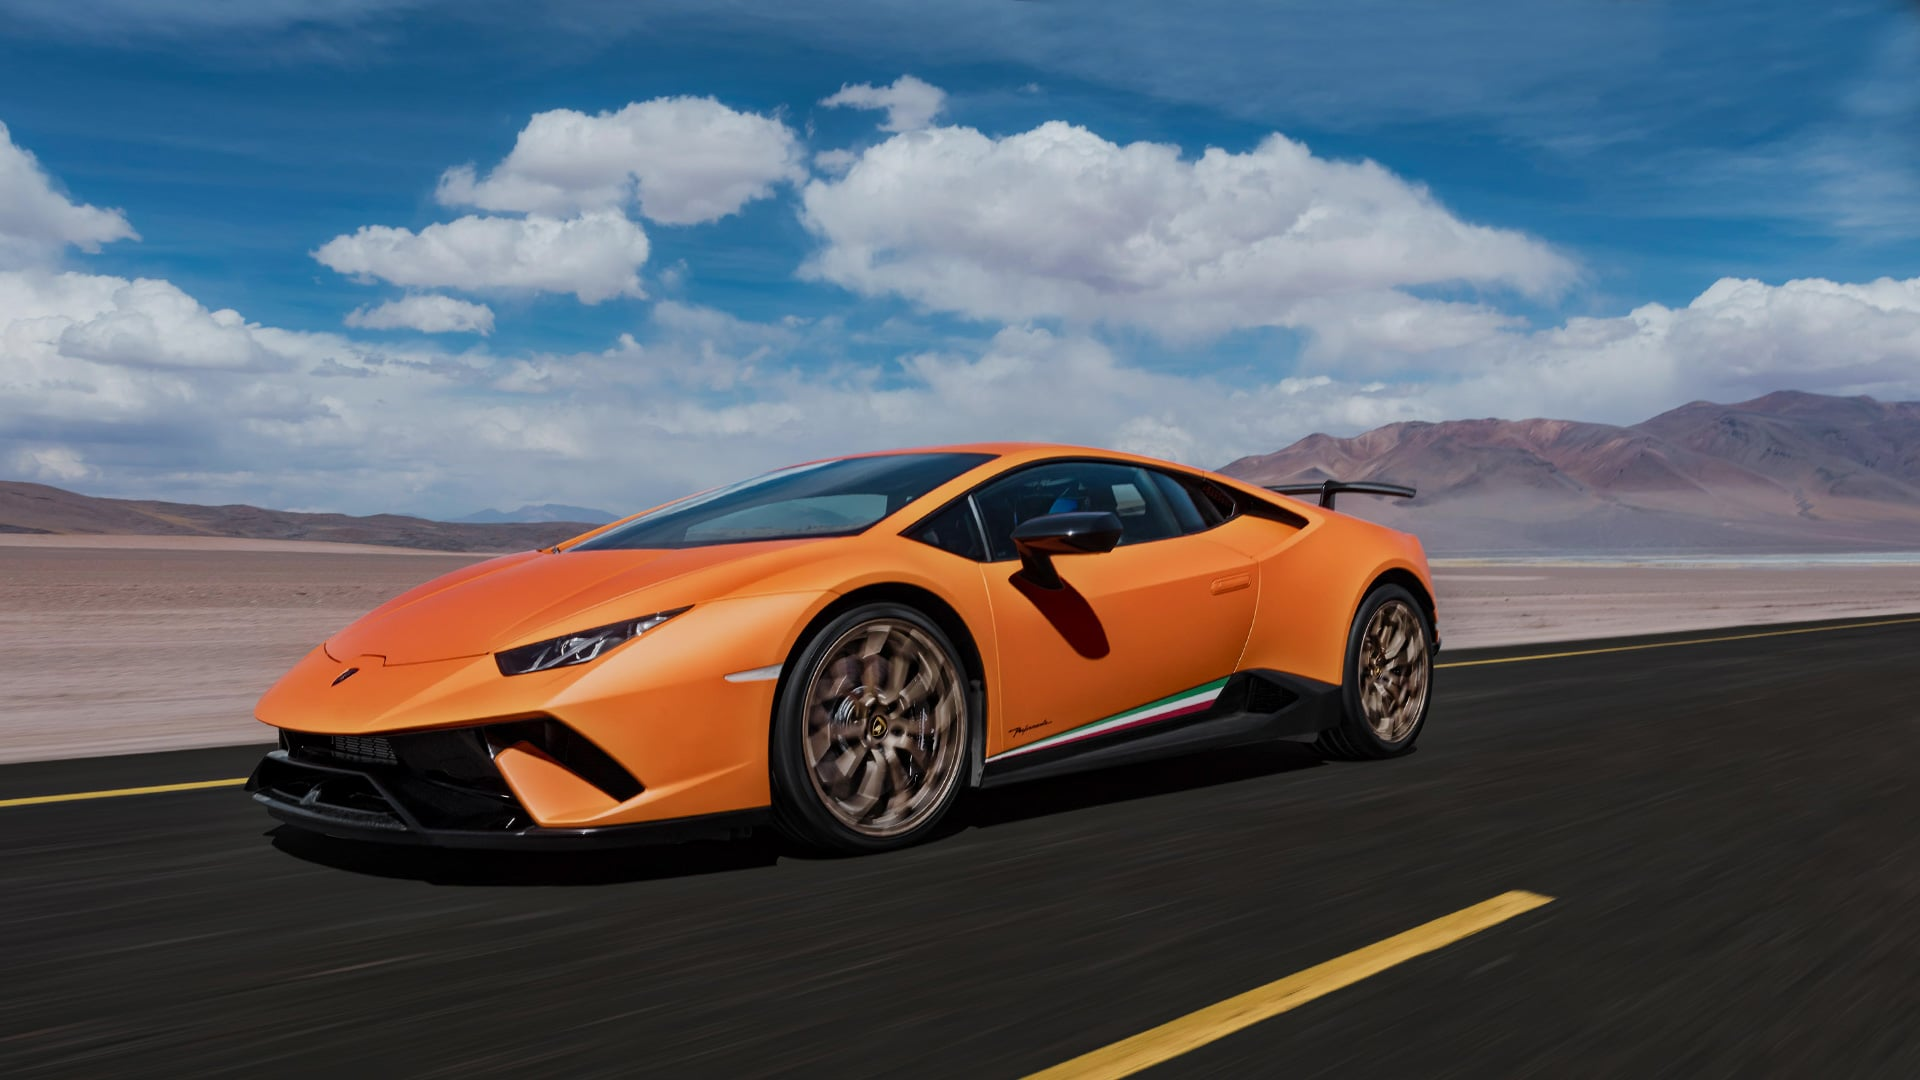 Lamborghini Huracan Horsepower >> Lamborghini Huracan Performante Technical Specifications